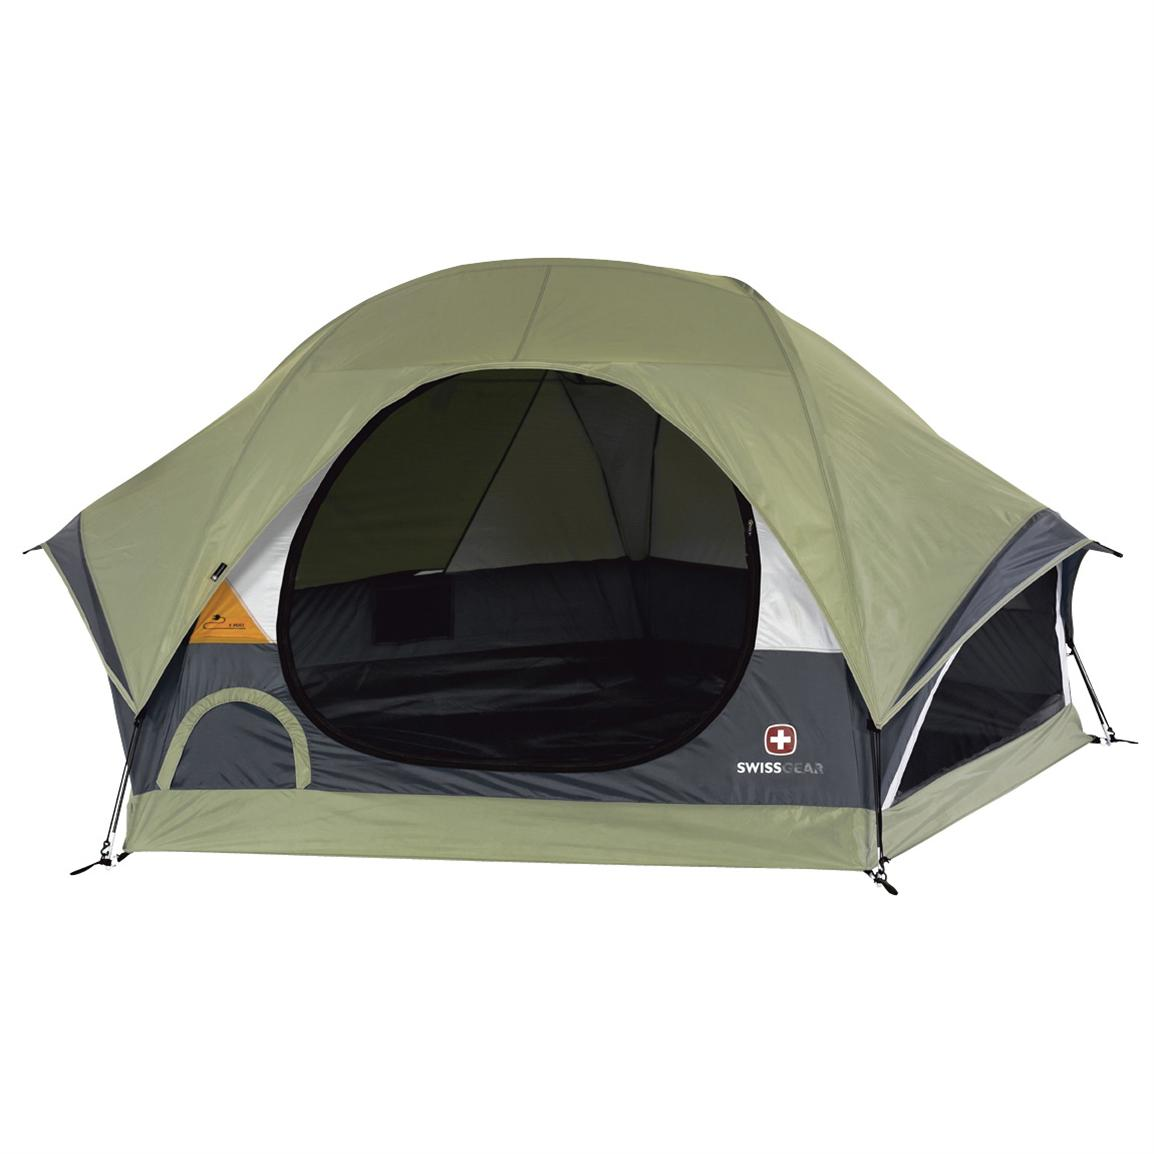 Wenger SwissGear Kandersteg I Sport Dome Tent with Rainfly  sc 1 st  Sportsmanu0027s Guide & Wenger® SwissGear™ Kandersteg I Sport Dome Tent - 123460 ...